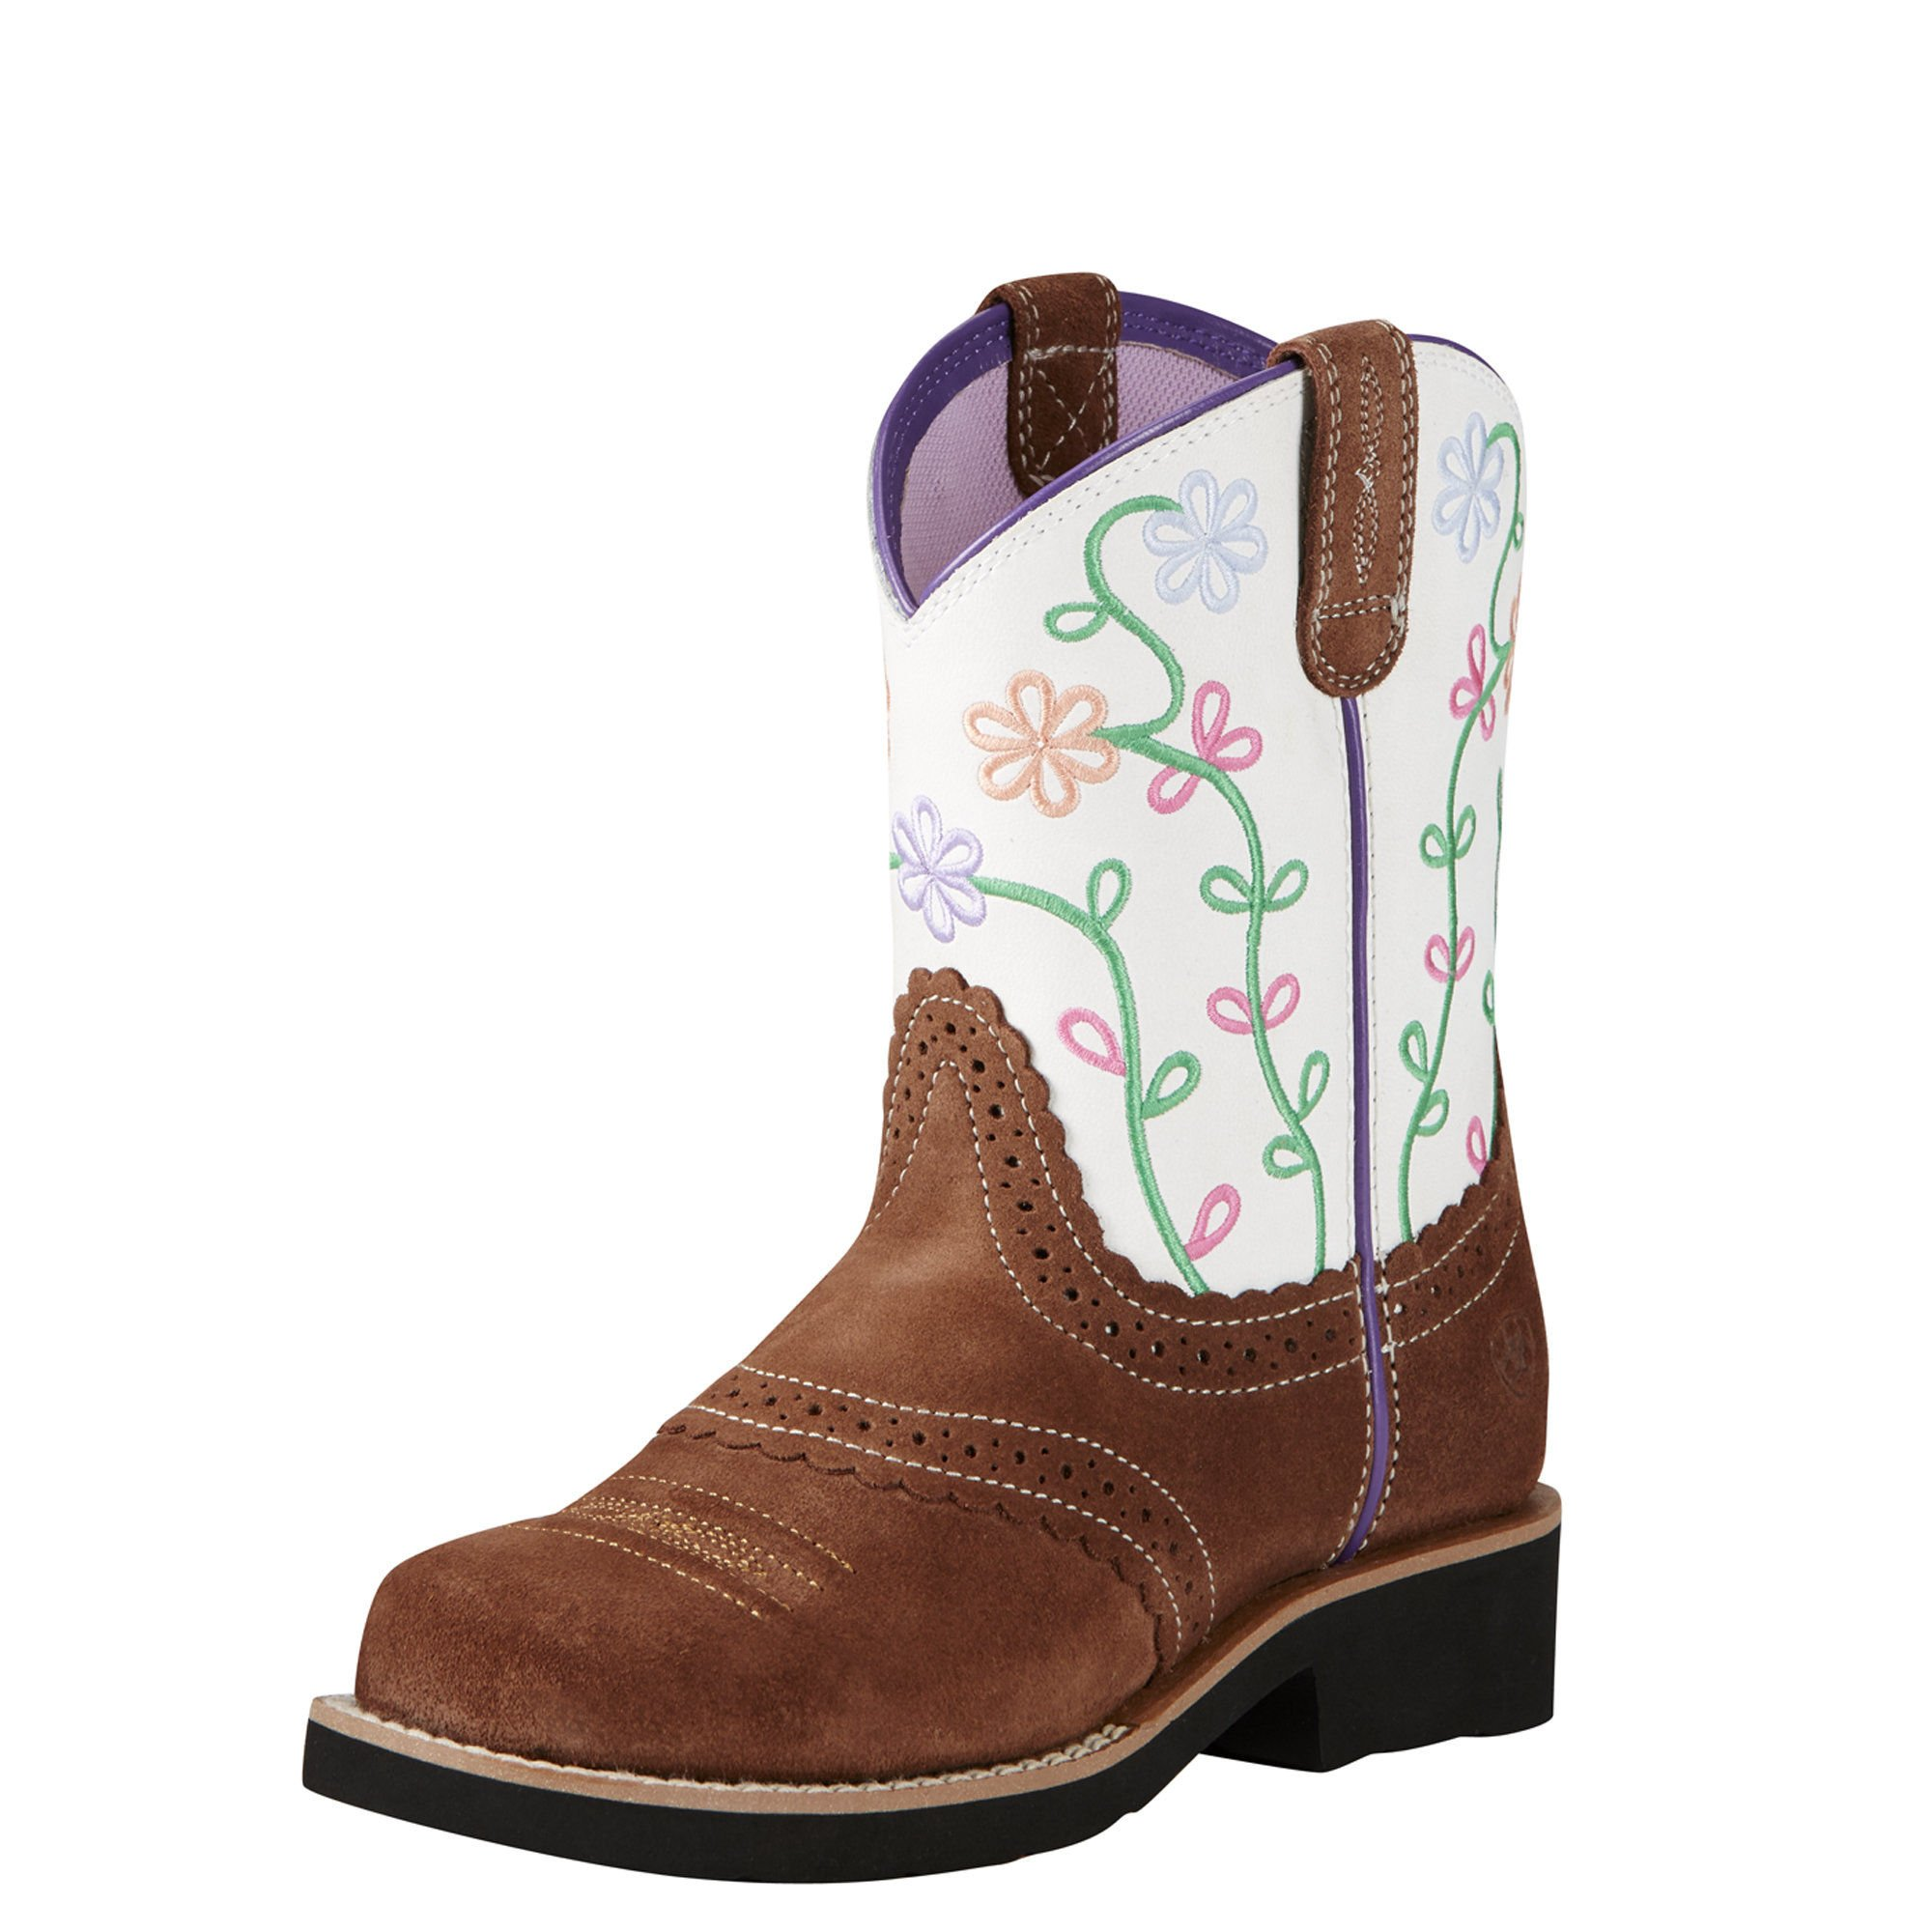 Kids' Fatbaby Blossom Western Cowboy Boot, Saddle Tan Suede, 4 M US Big Kid by Ariat (Image #1)